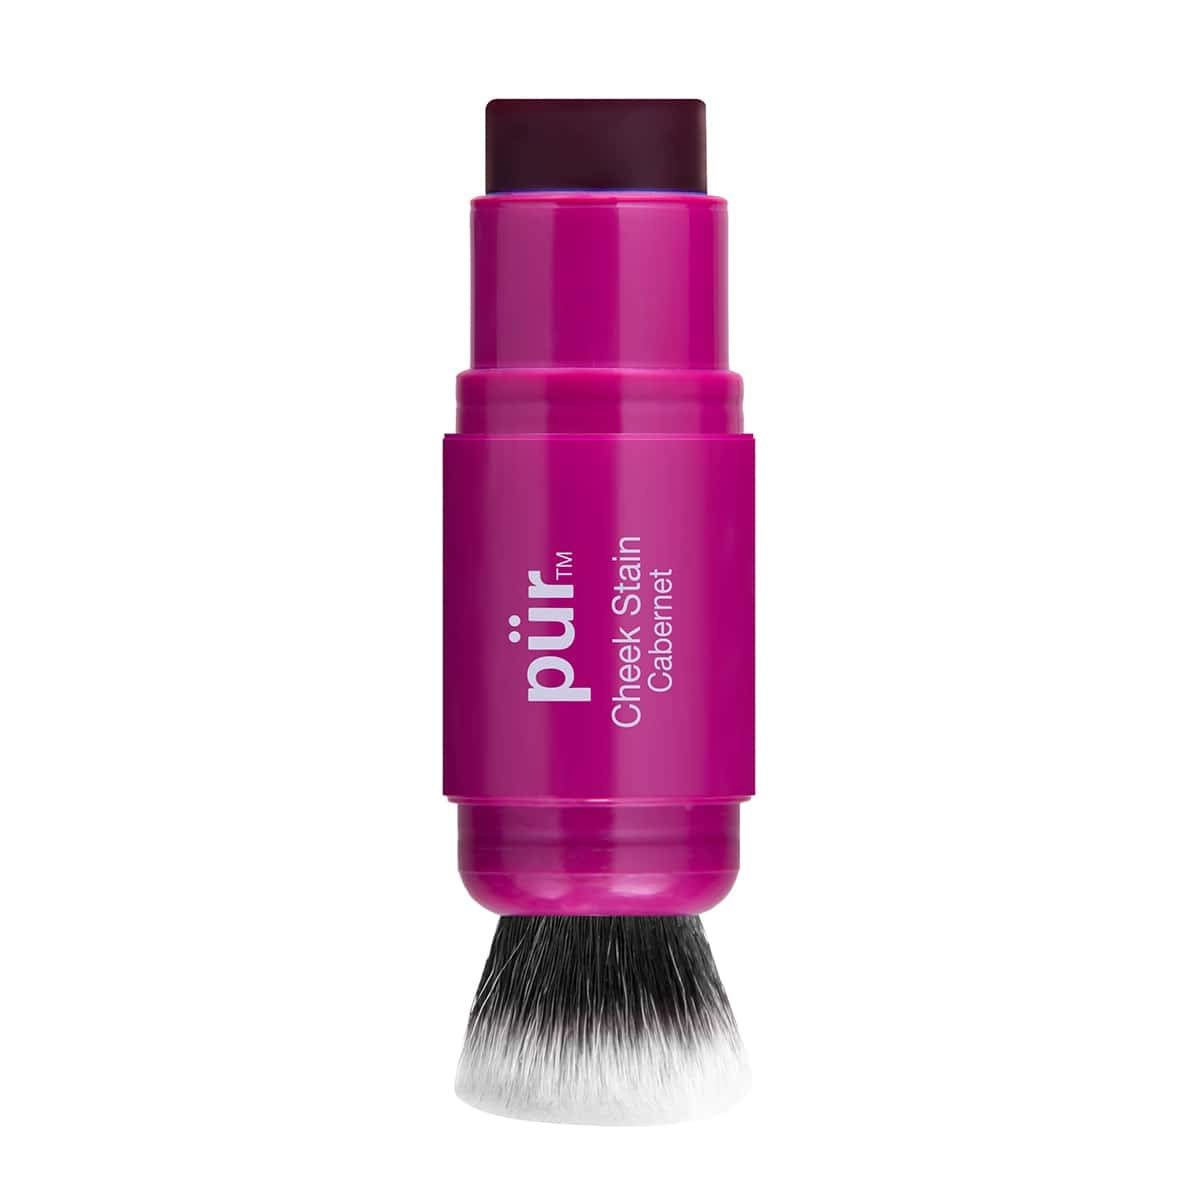 P R Chateau Cheek Stain Blush Tint and Brush Duo in Cabernet, 0.19 Ounce